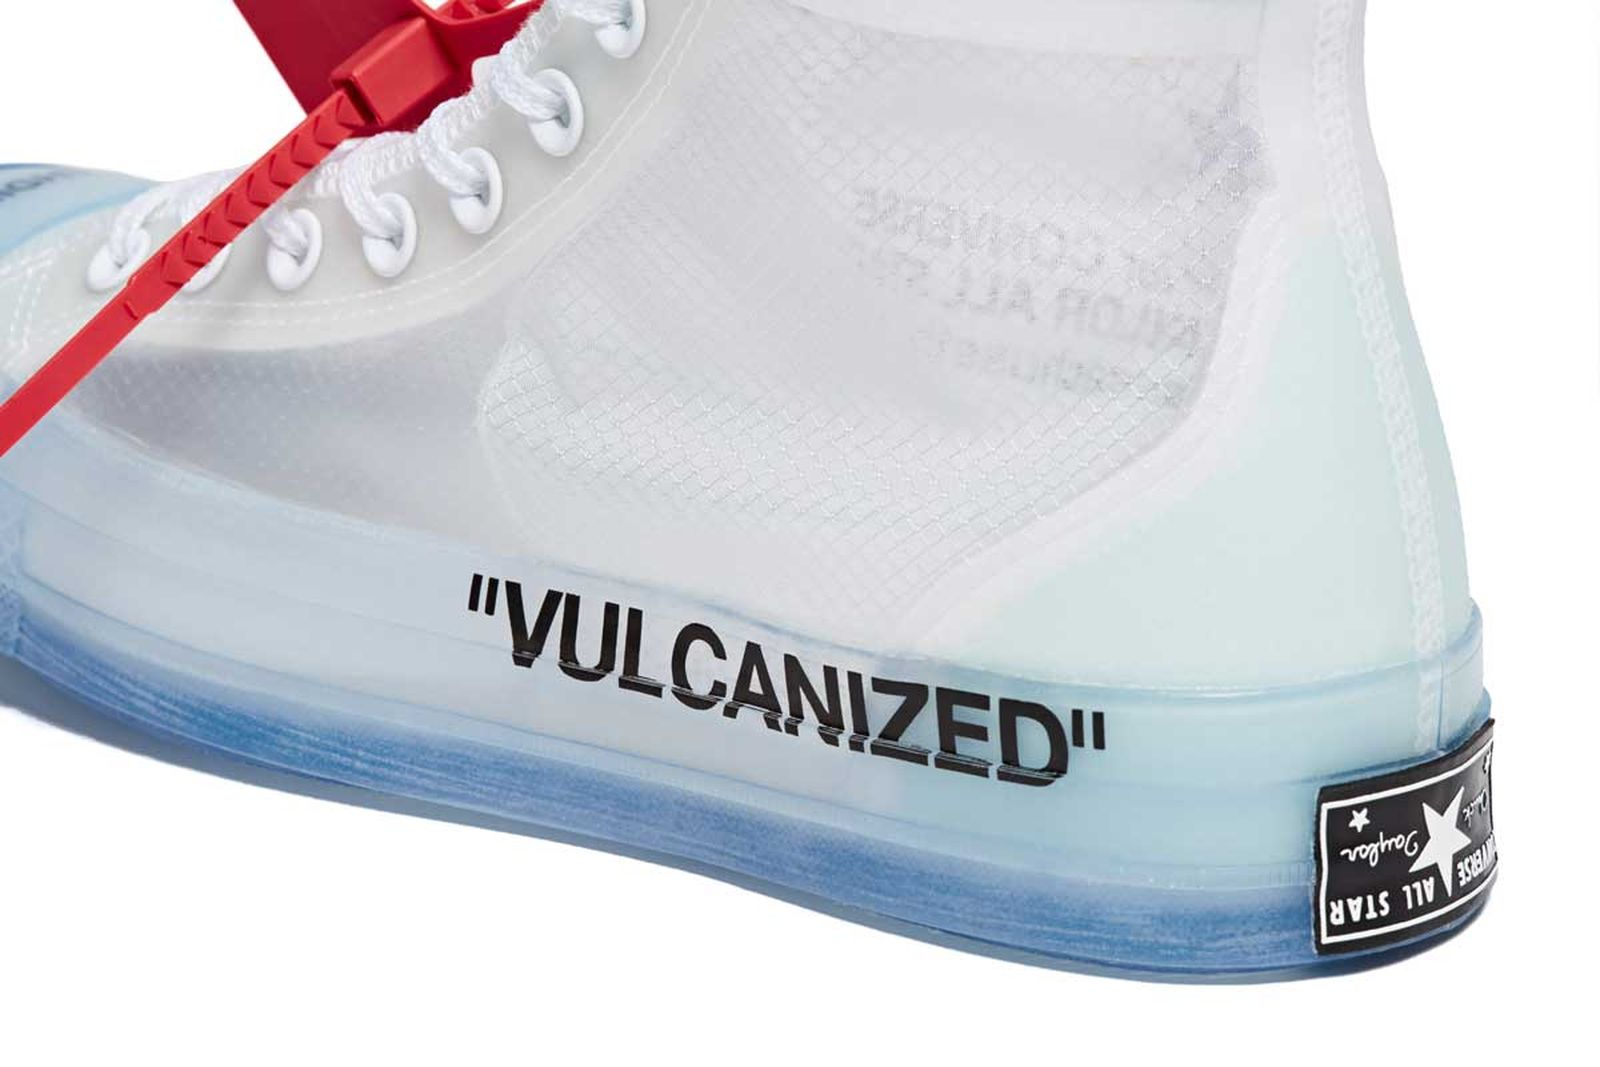 virgil-abloh-converse-all-star-release-date-price-2018-06